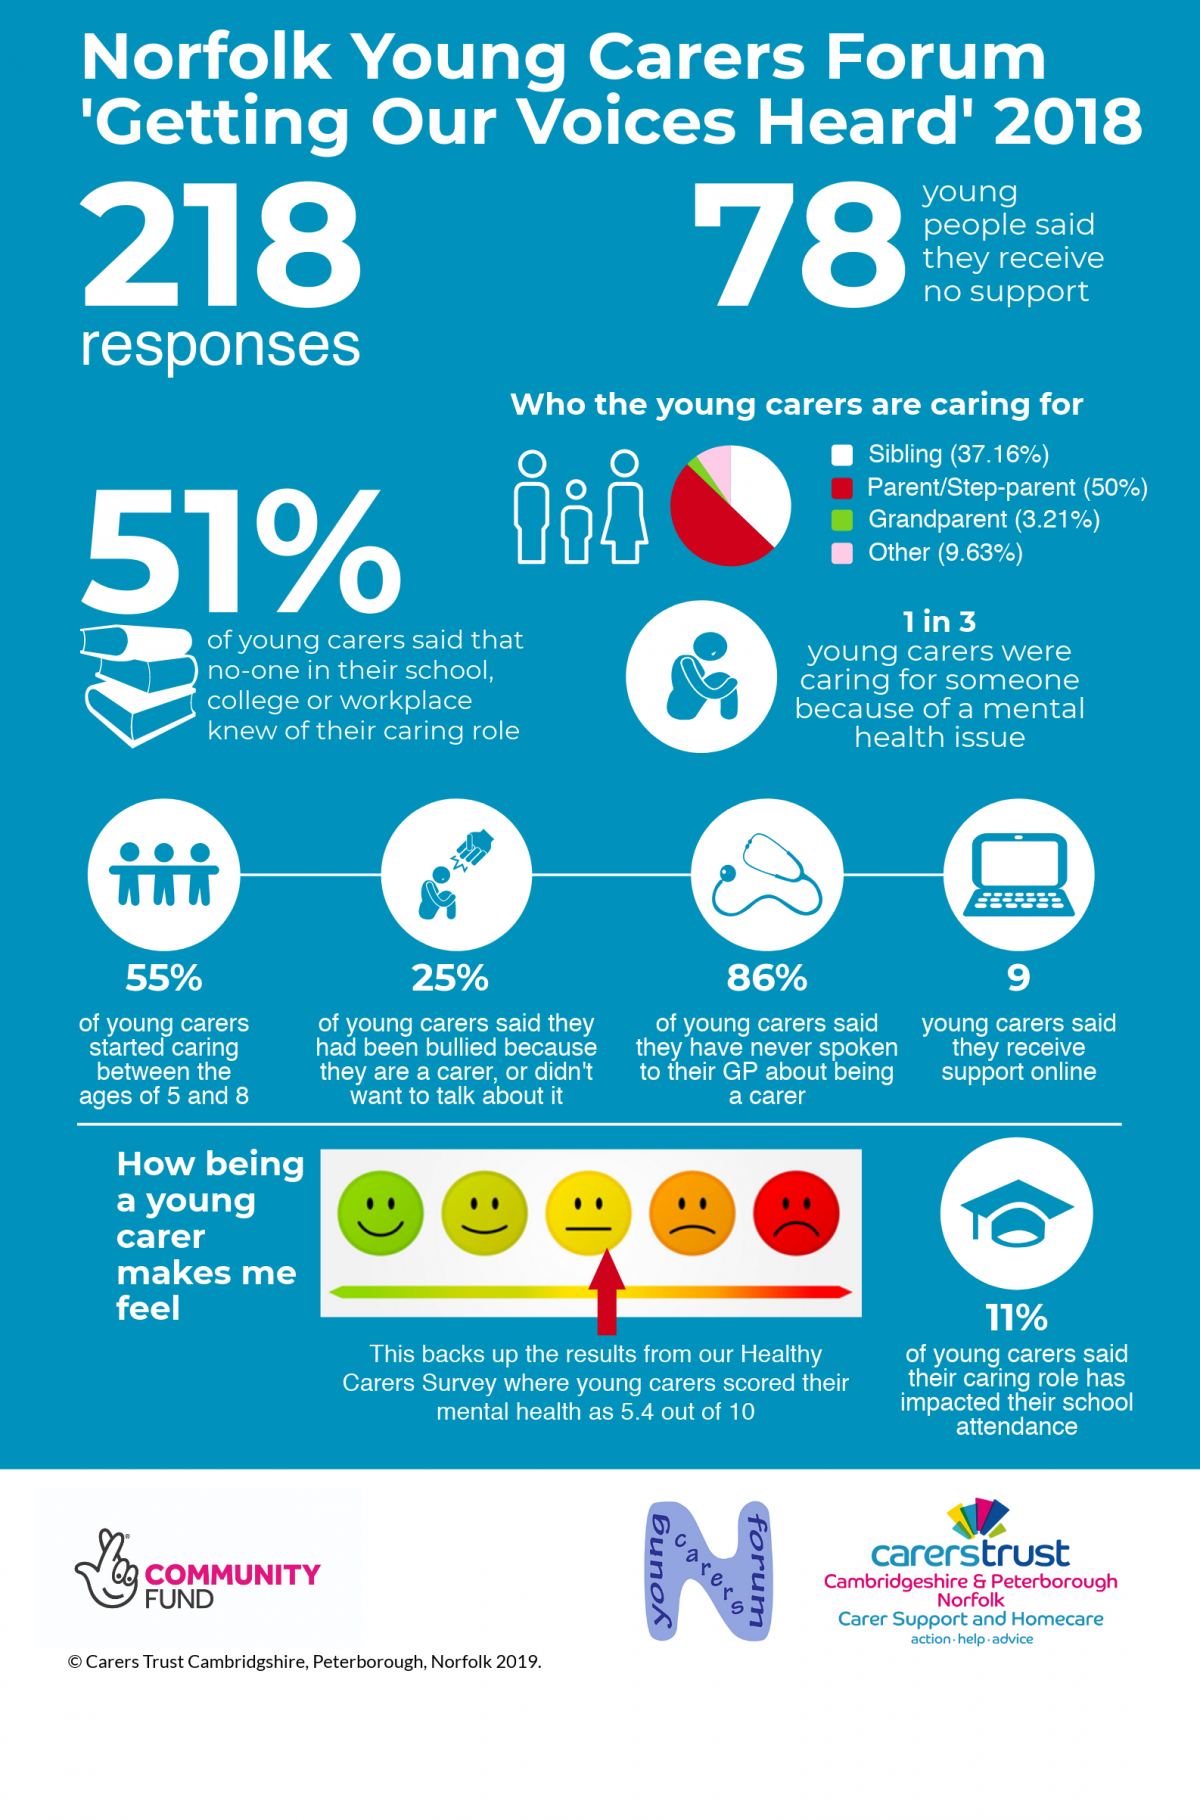 218 young carers responded 78 said they receive no support  37.16% care for a sibling 50% care for a parent 3.21% care for a grandparent 9.63% care for someone outside of this demographic  51% of young carers said no one in their school, college or workplace knew about their caring role  1 in 3 young carers care for someone with a mental health issue  55% of young carers started caring between the ages of 5 and 8 25% of young carers said they had been bullied because they are a carer, or didn't want to talk about it 86% of young carers said they have never spoken to their GP about their caring role 9 young carers out of 218 said they . receive support online 11% of young carers said their caring role impacted their school attendance